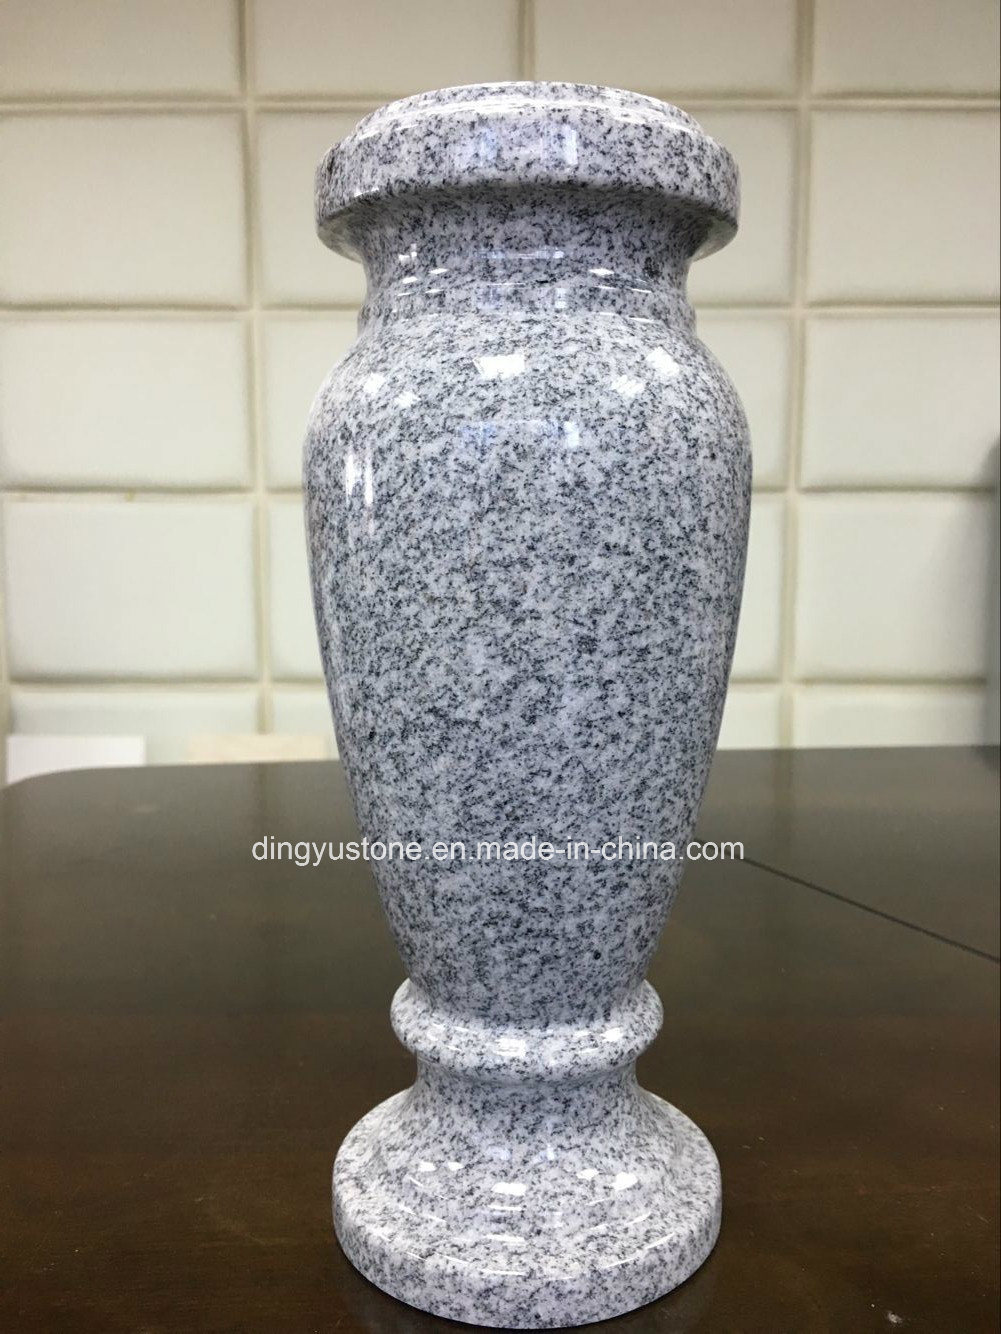 Natural Granite, Marble, Onxy Memorial Vases, Funeral Products